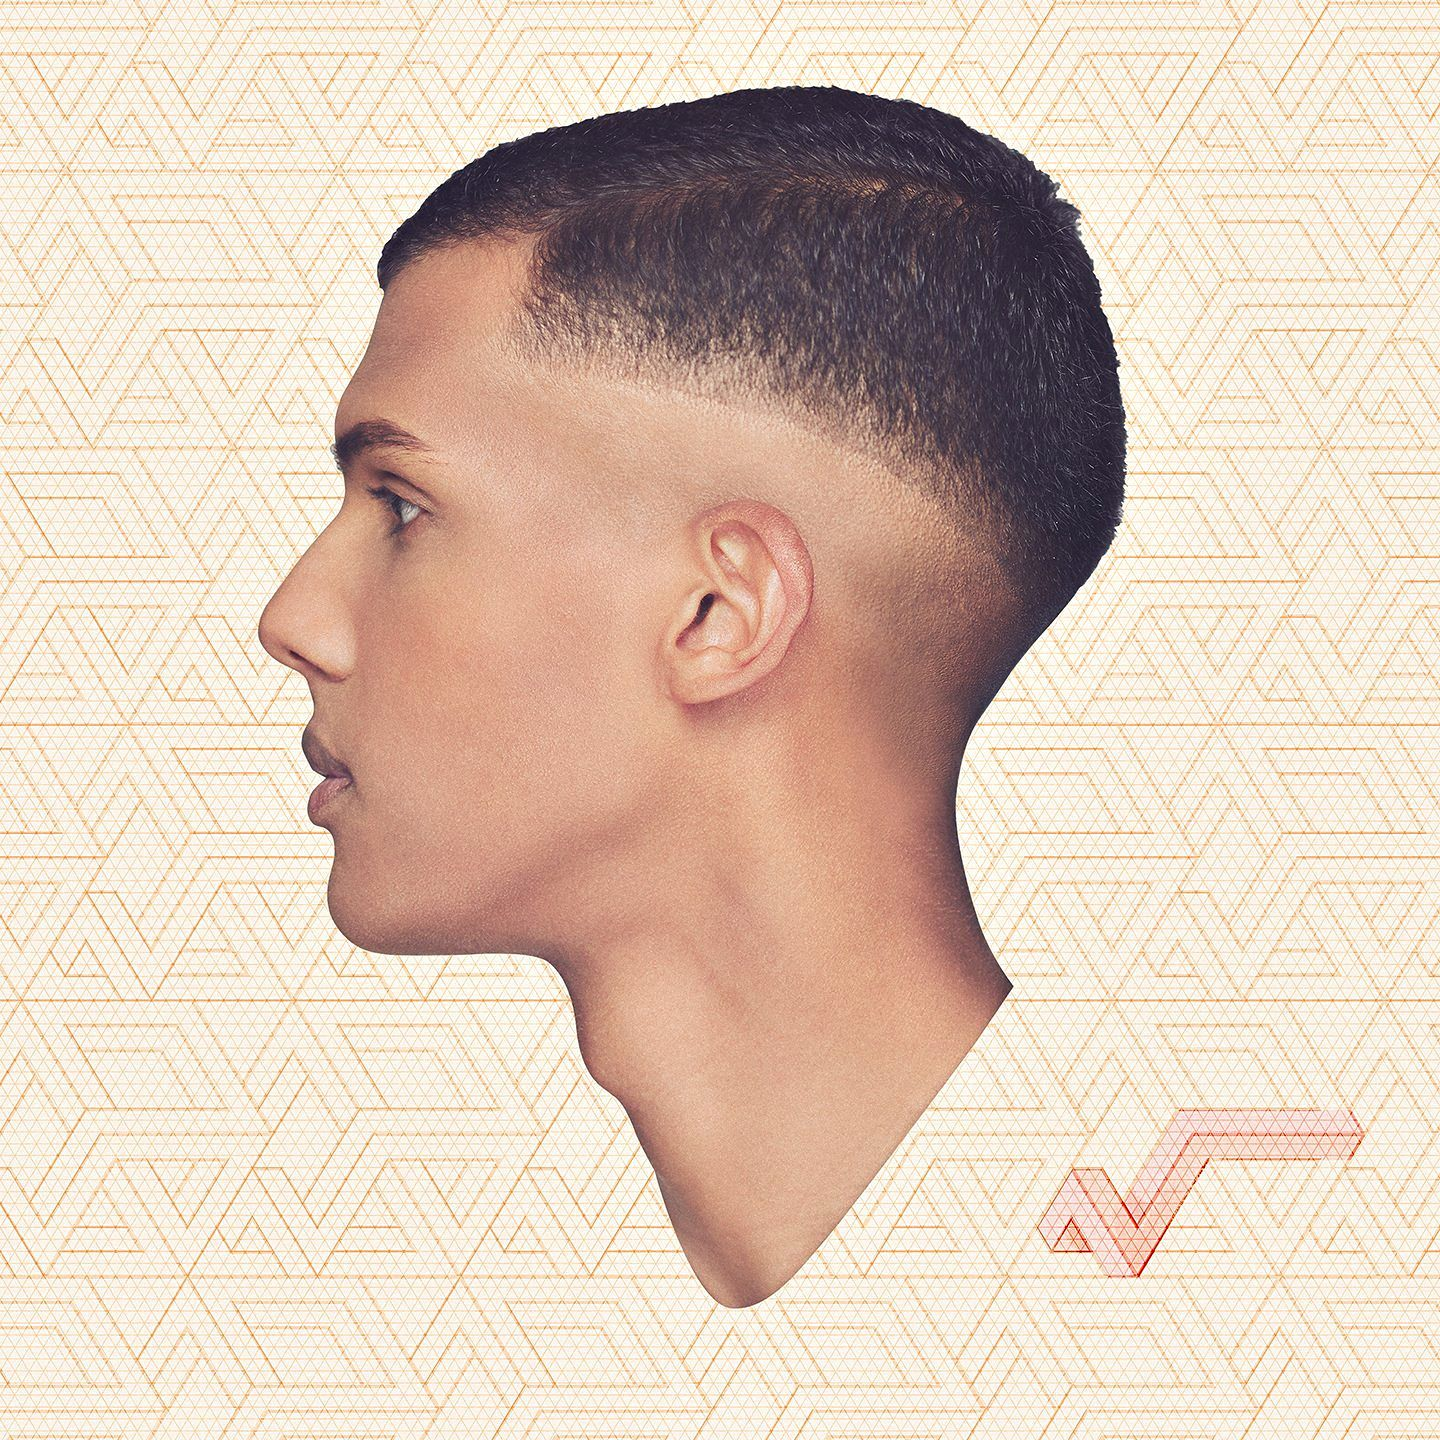 Stromae - Racine Carrée album cover